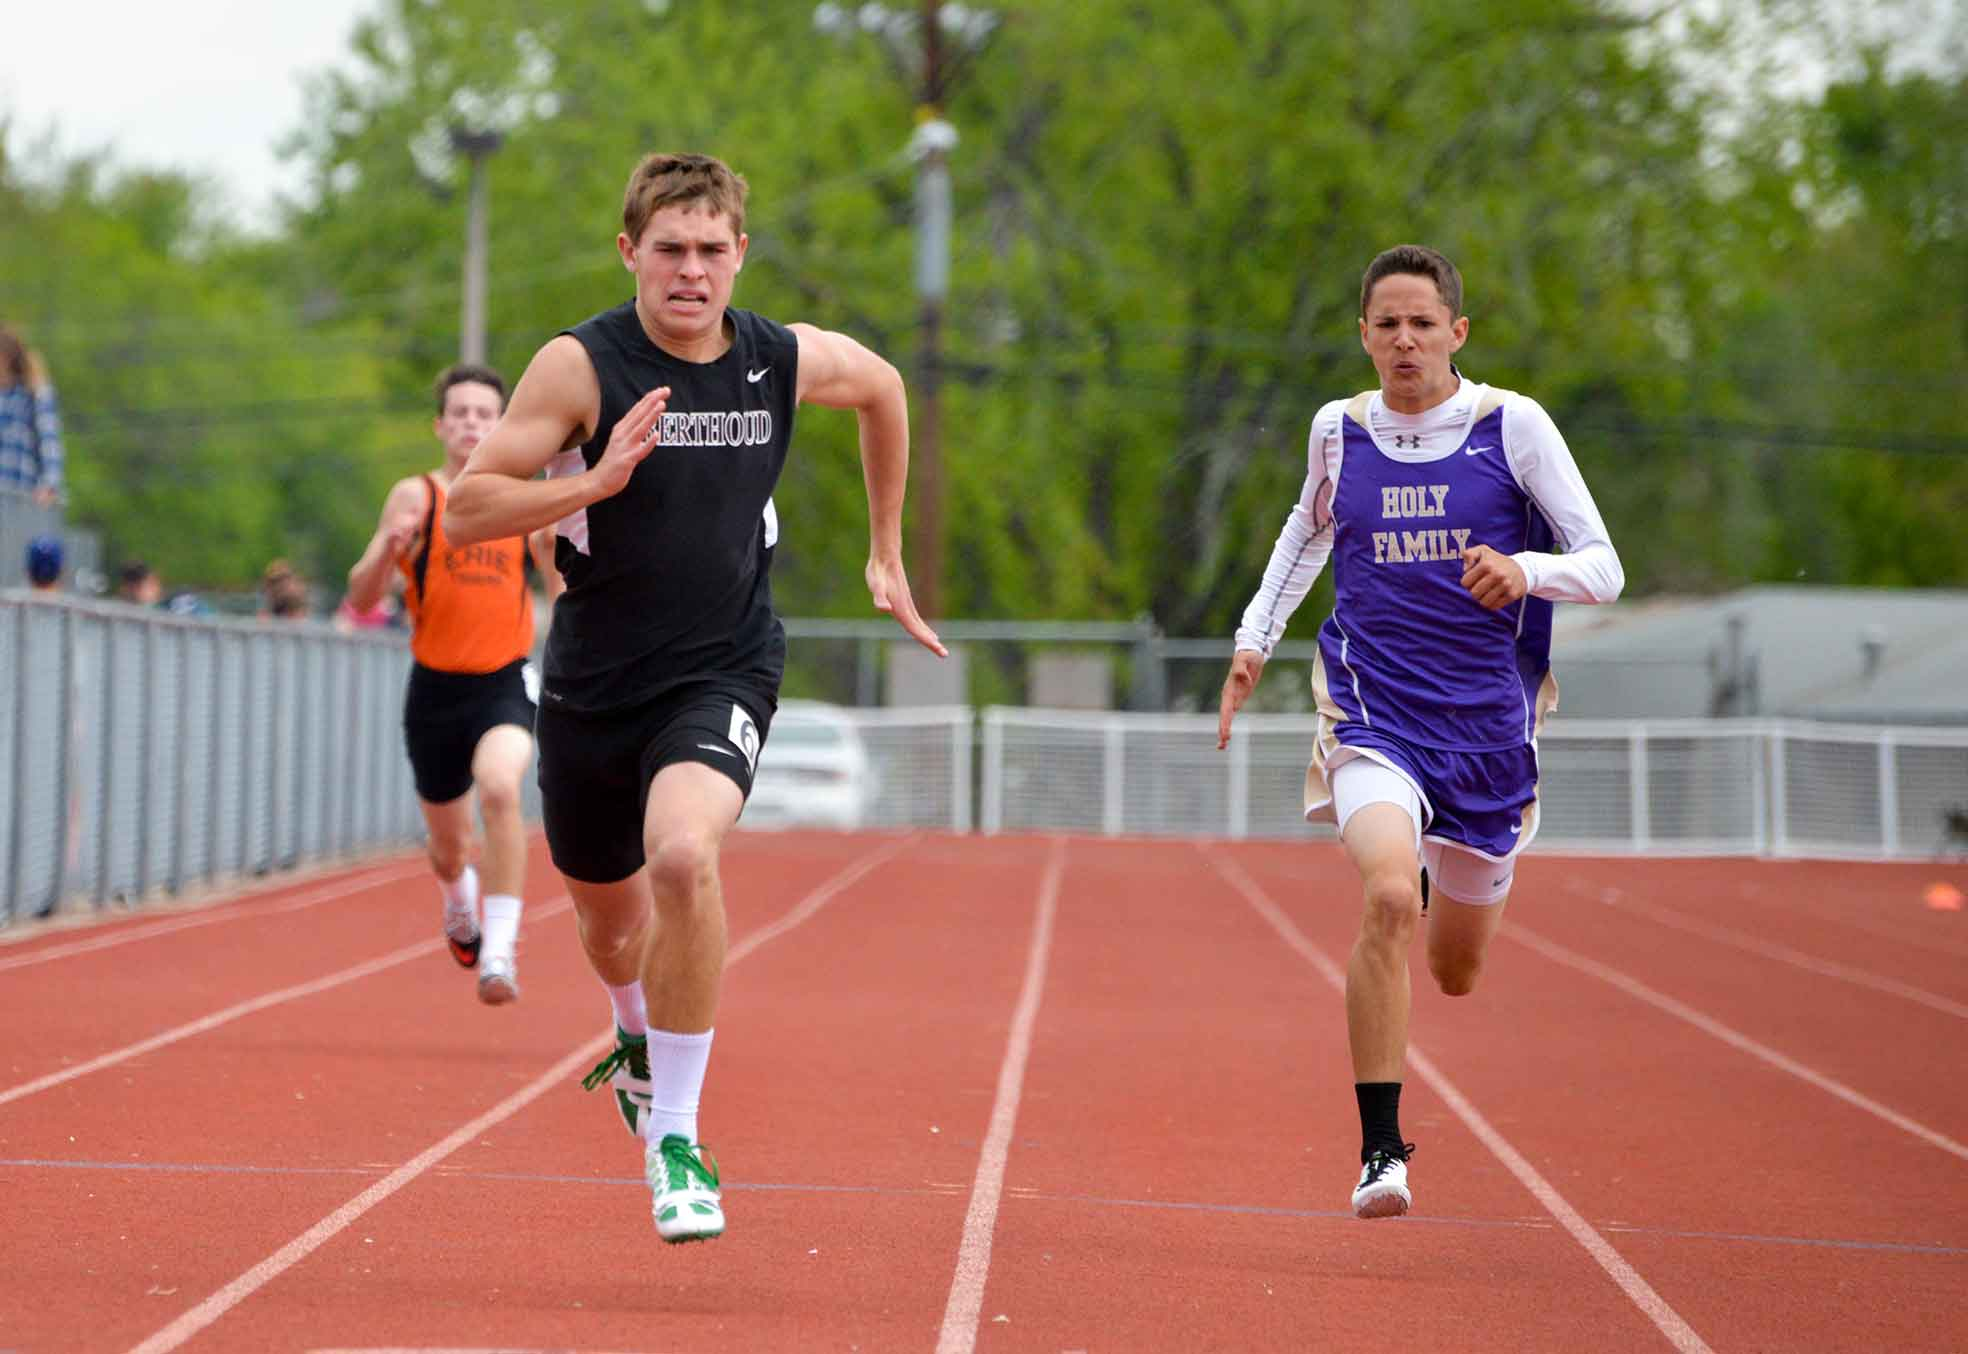 photos trivalley conference championships may 12 2015